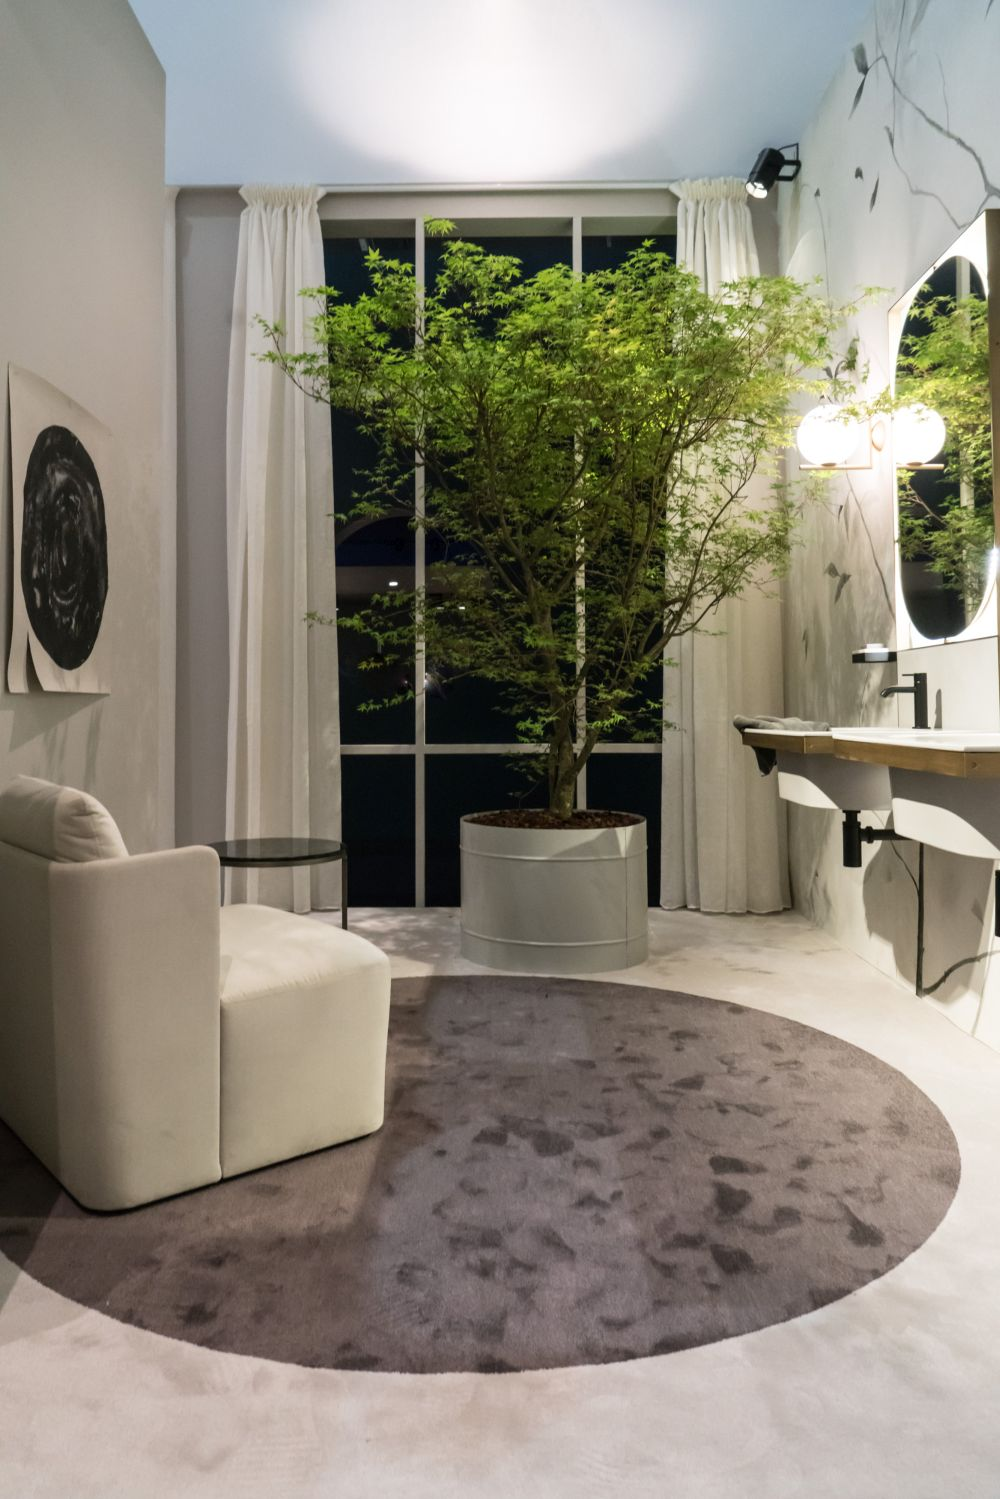 This bathroom space has a vanity and feels like a living room.